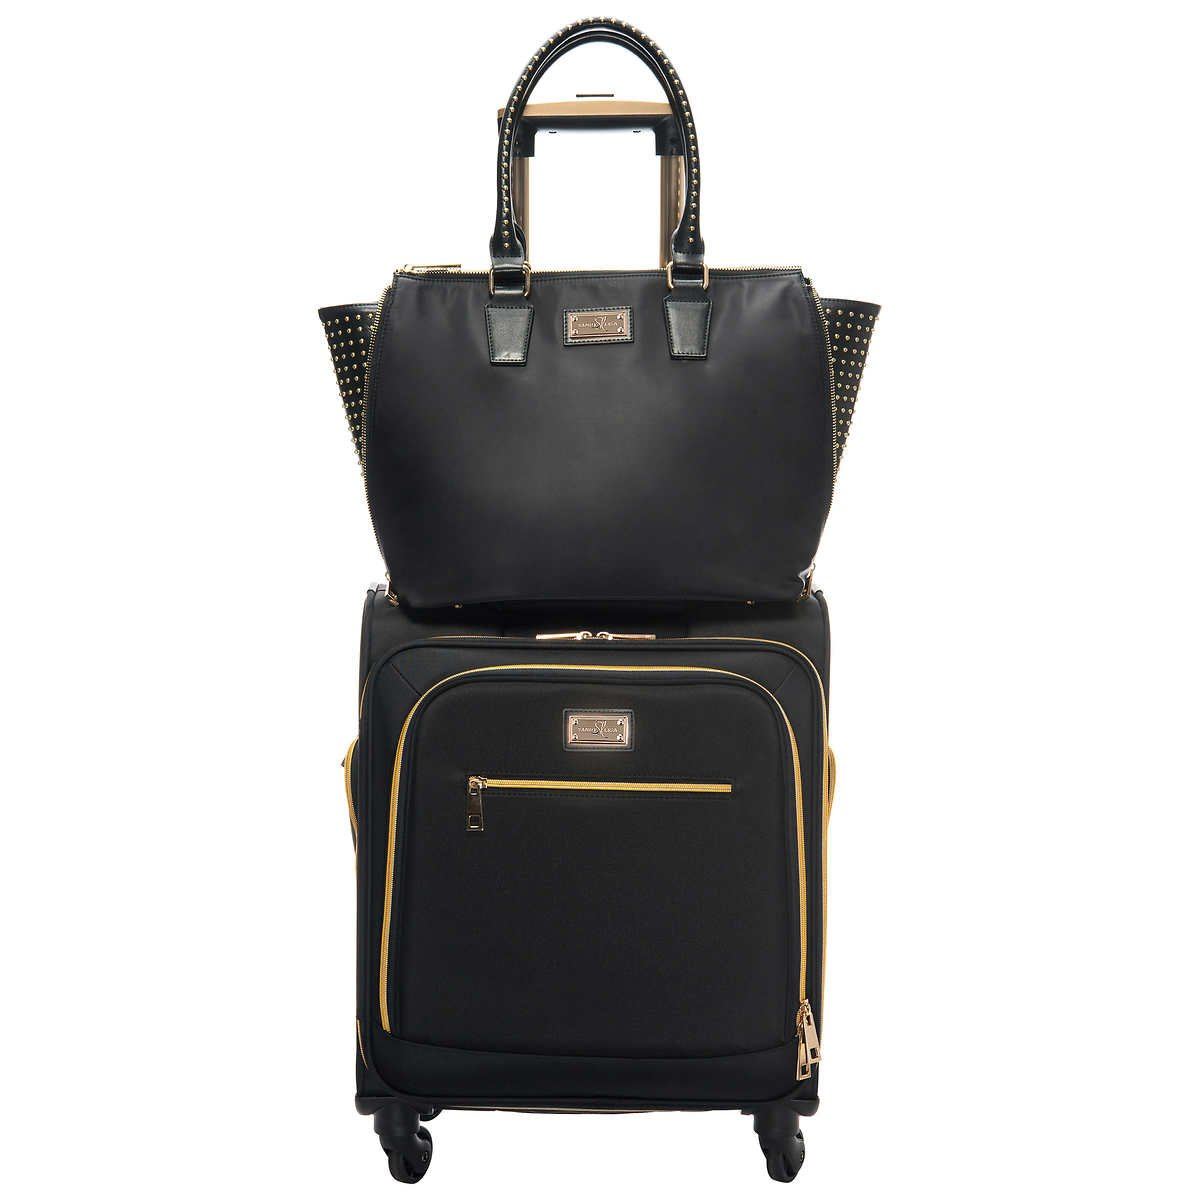 Sandy Lisa Carry On Luggage and Tote B07HQW58TB  Luggage and Tote